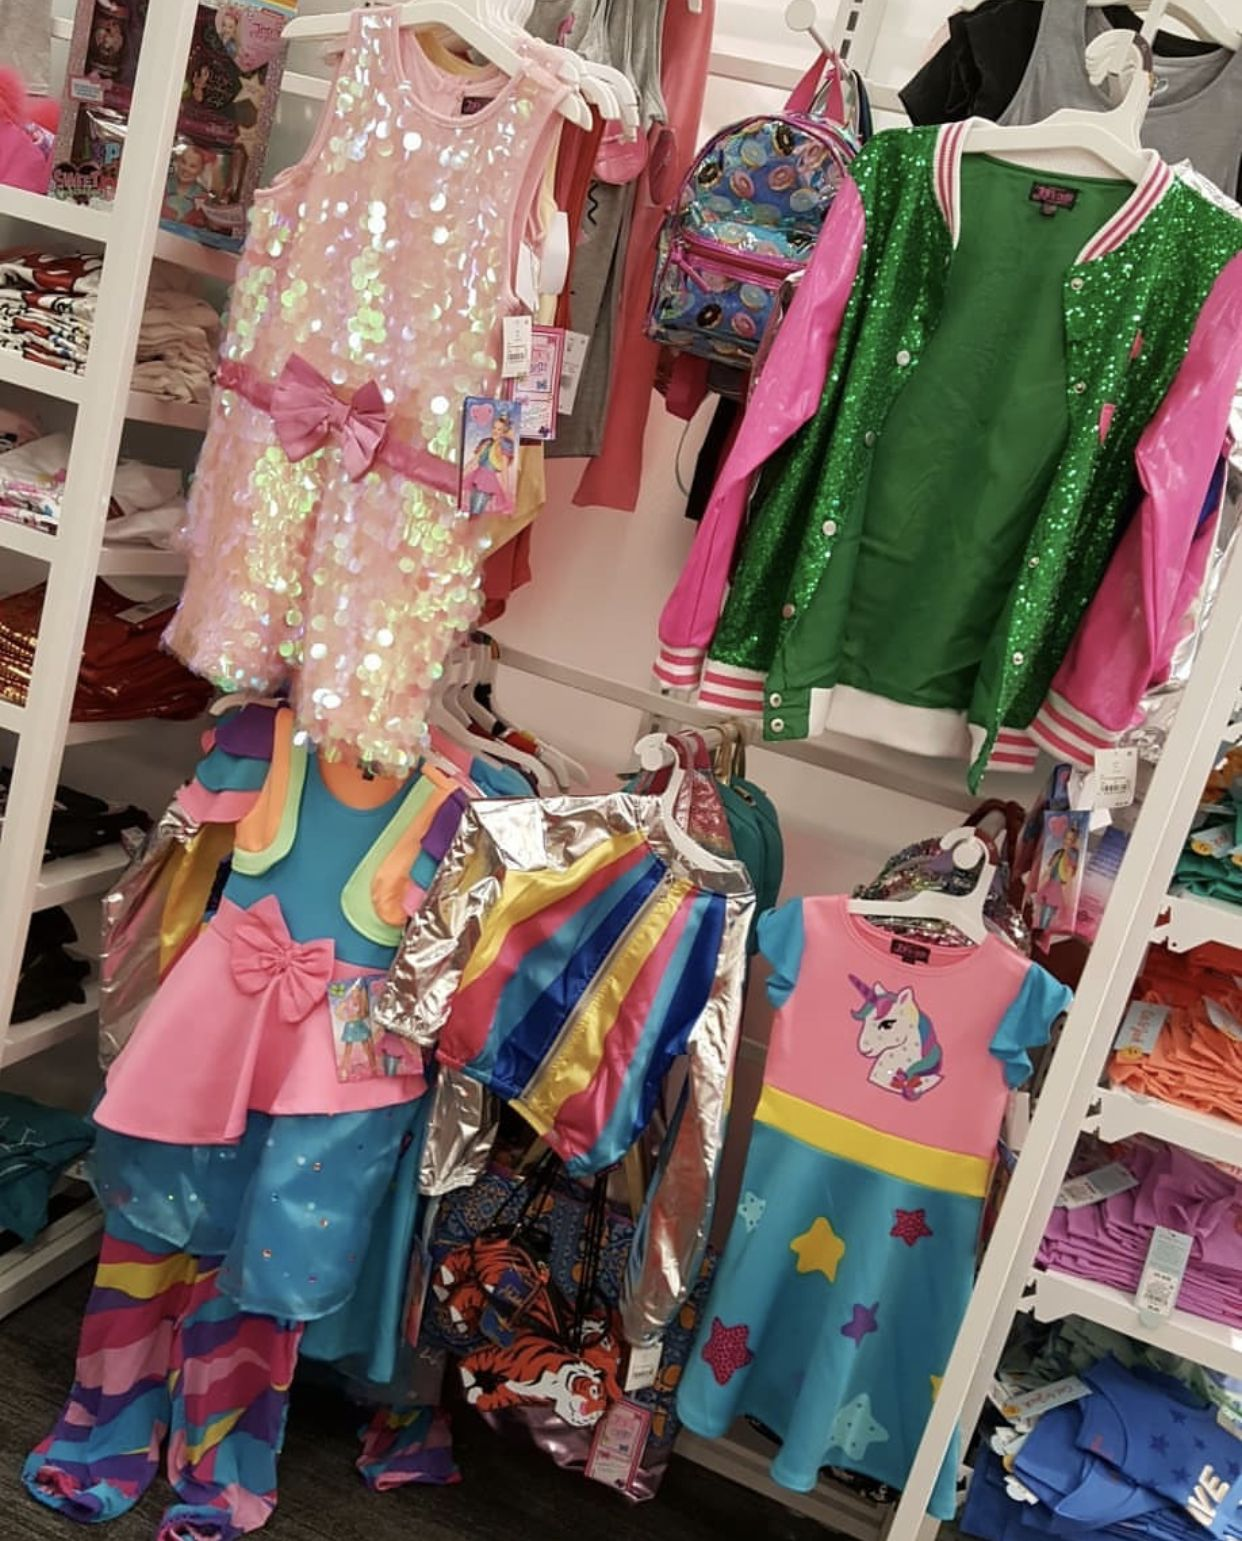 Jojo Siwa Jojo S Closet Can Only Be Found At Target Jojo Siwa Outfits Jojo Siwa Jojo